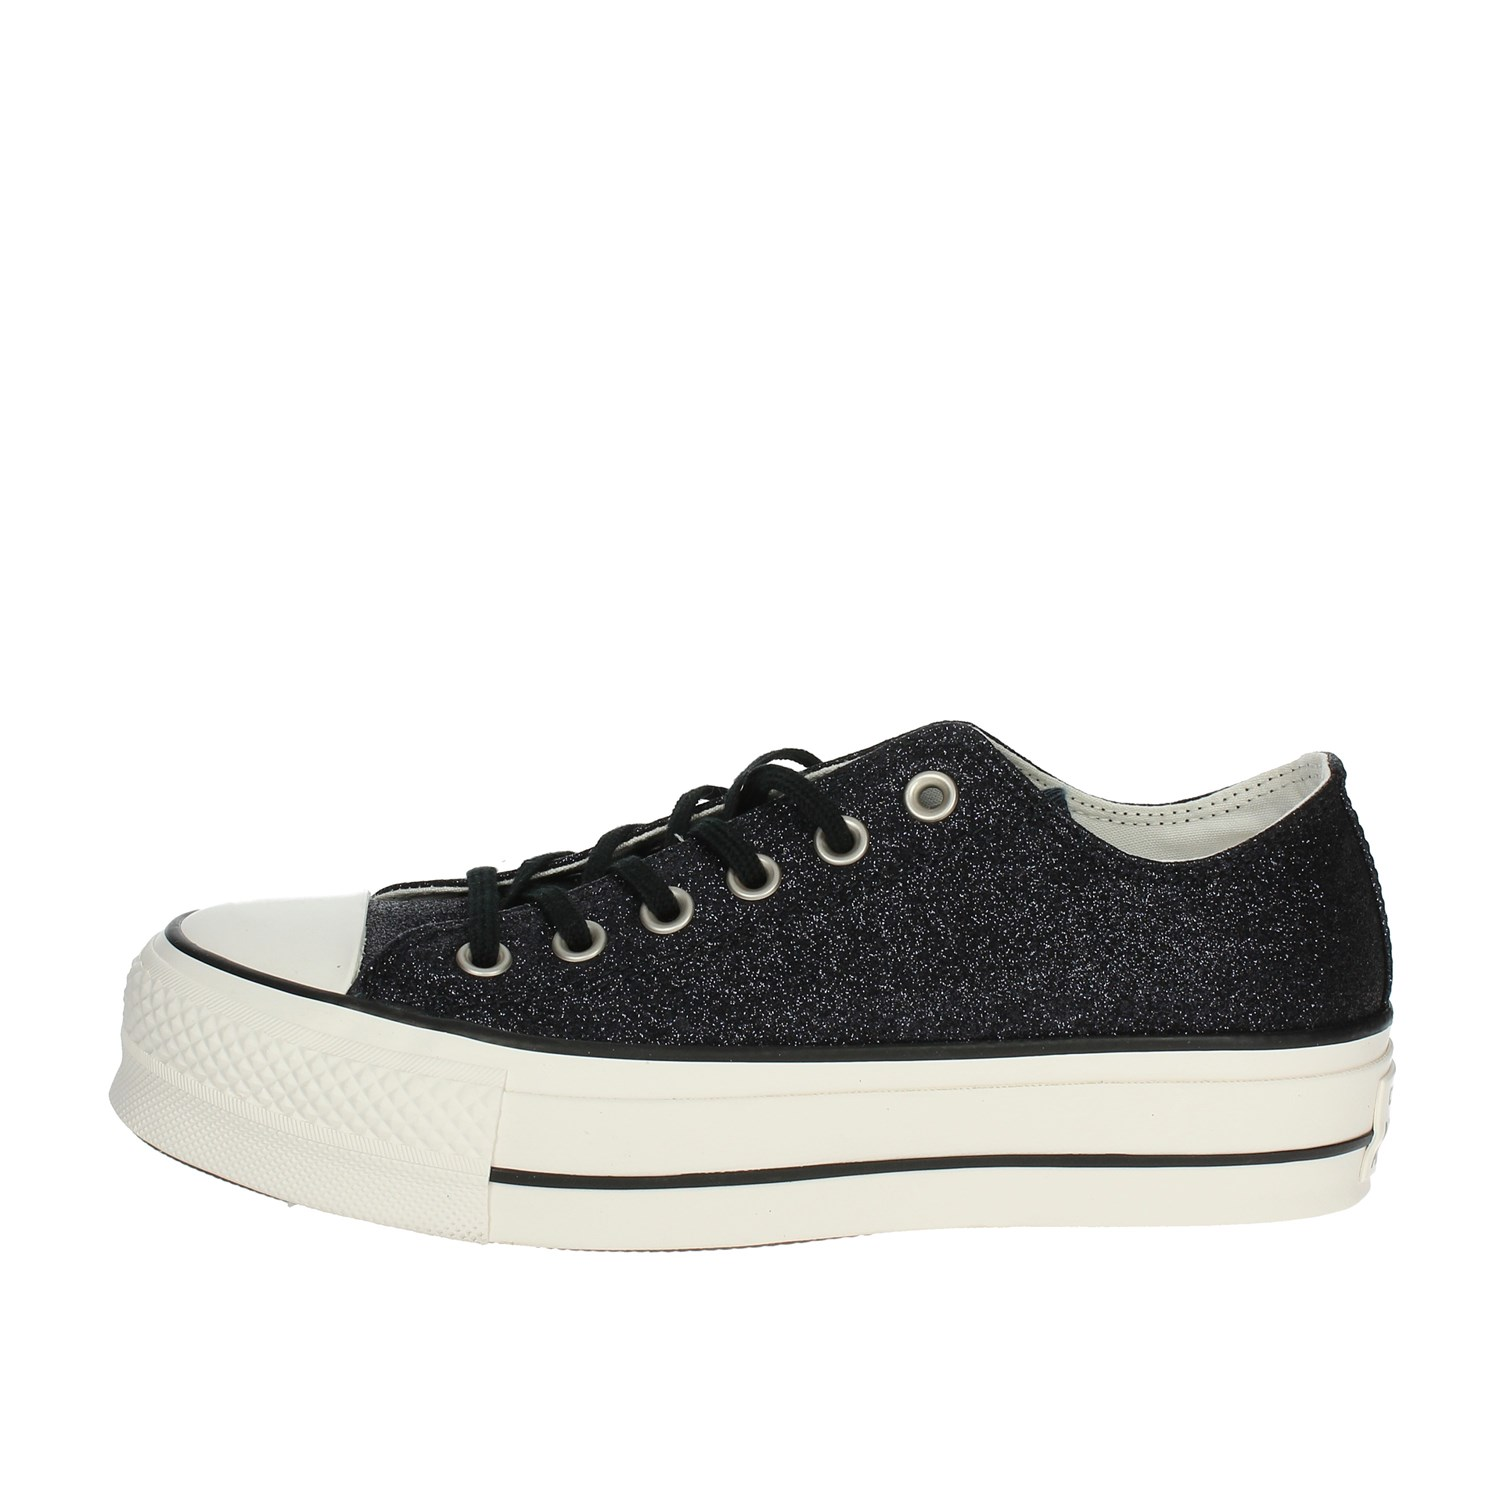 uk availability 244f2 a3357 Alta qualit SNEAKERS Donna CONVERSE 561040C Primavera Estate -  mainstreetblytheville.org